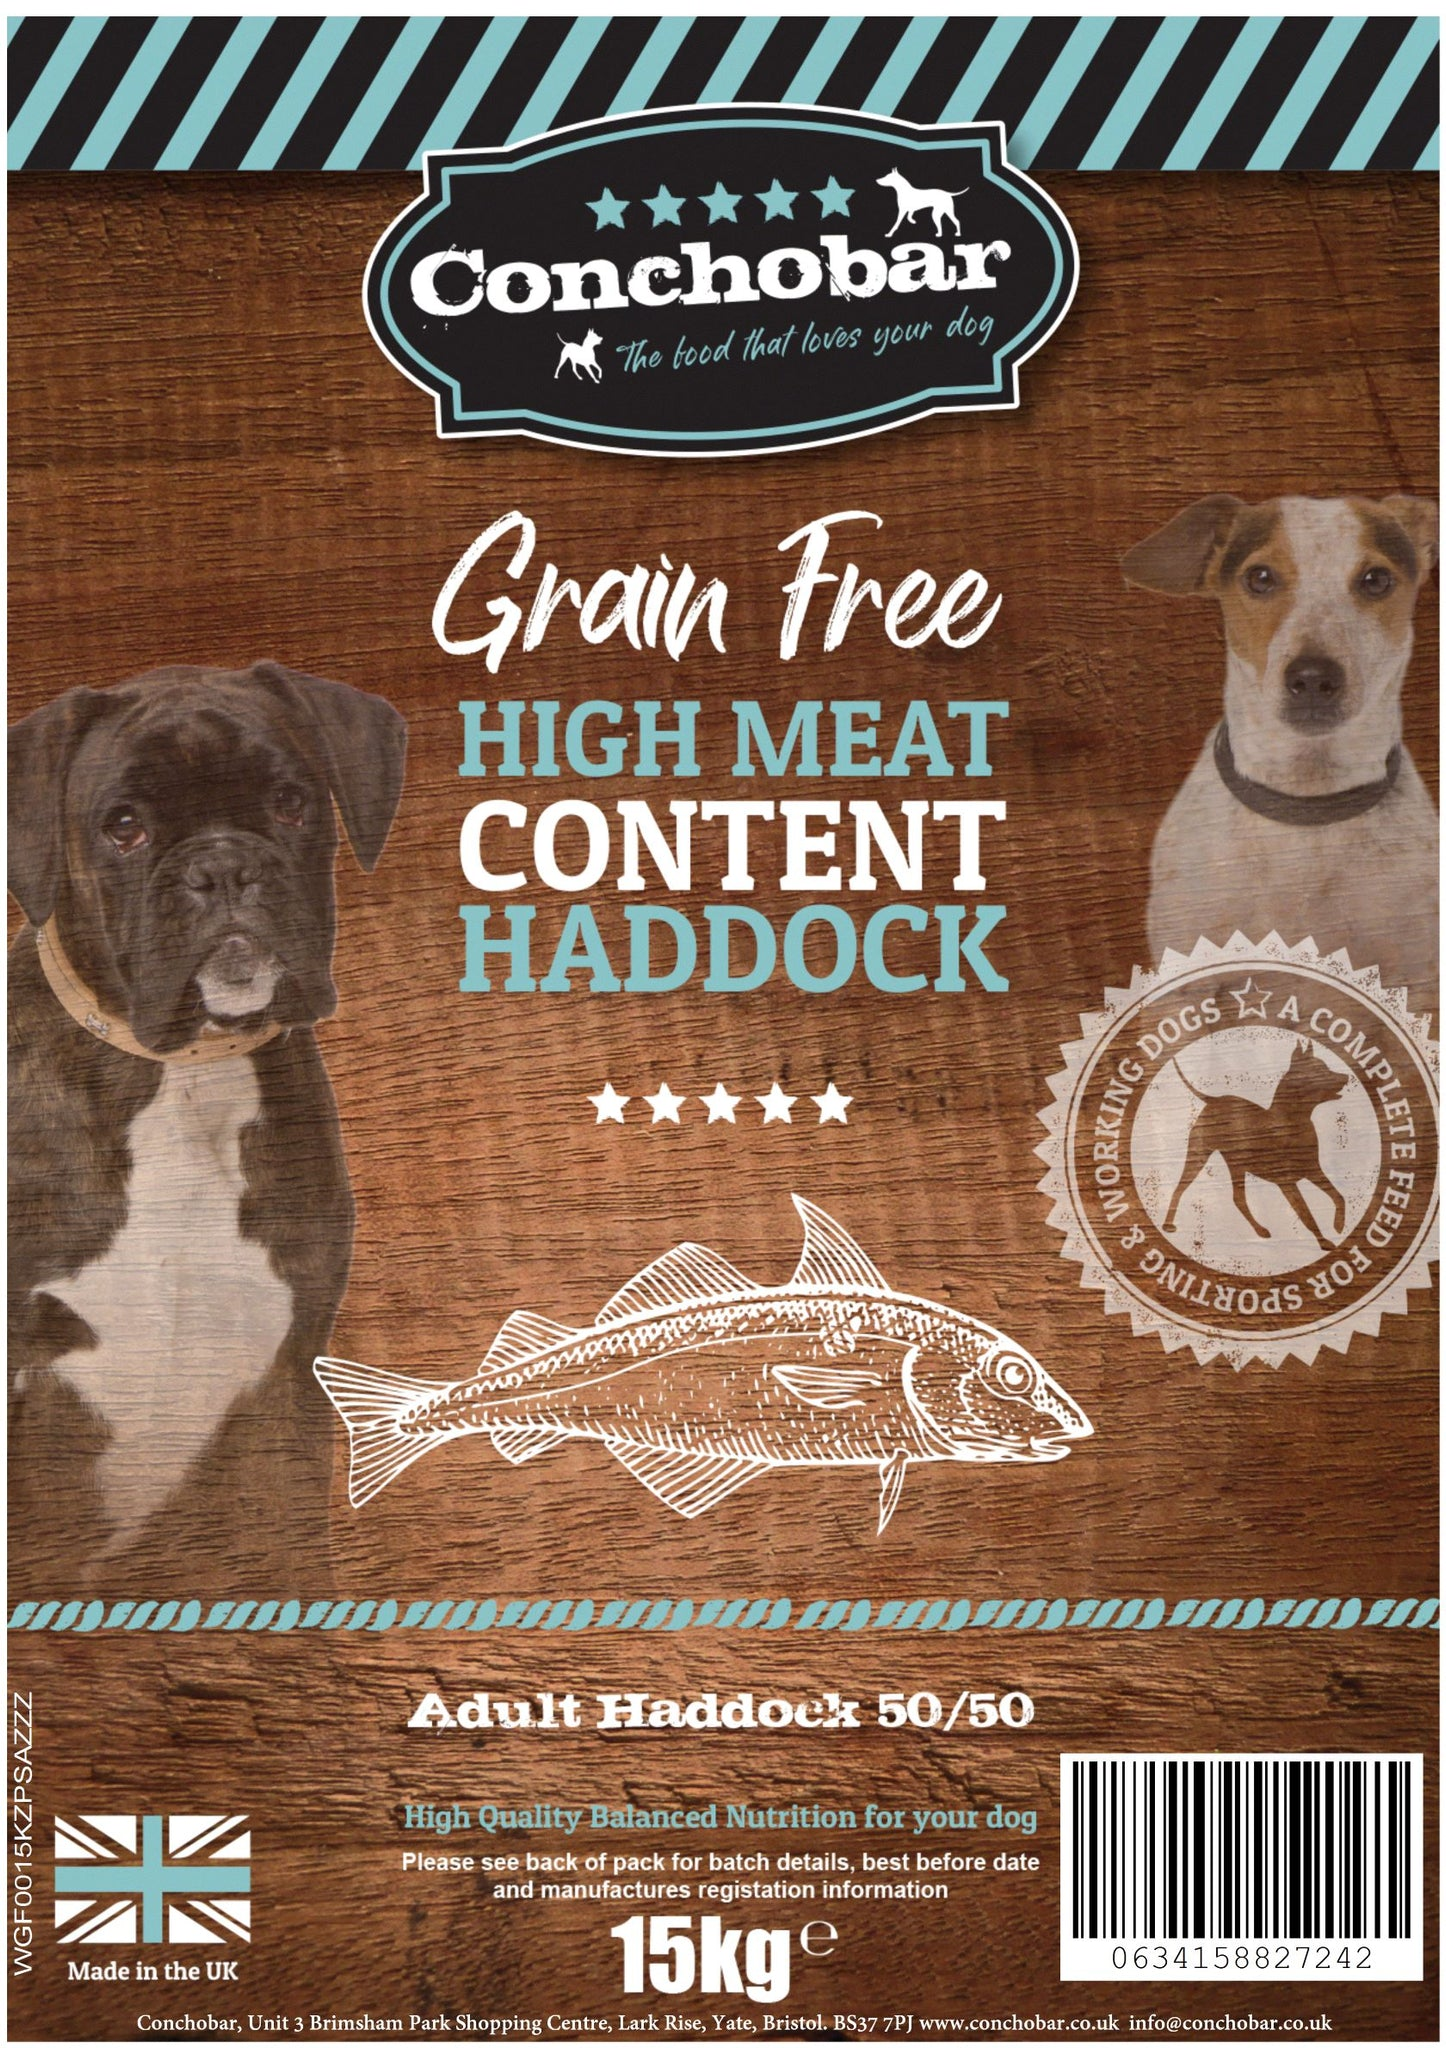 Conchobar Adult Haddock 50/50 30kg (2x15kg) - Conchobar, Adult Dog - Hypoallergic grain free dog food